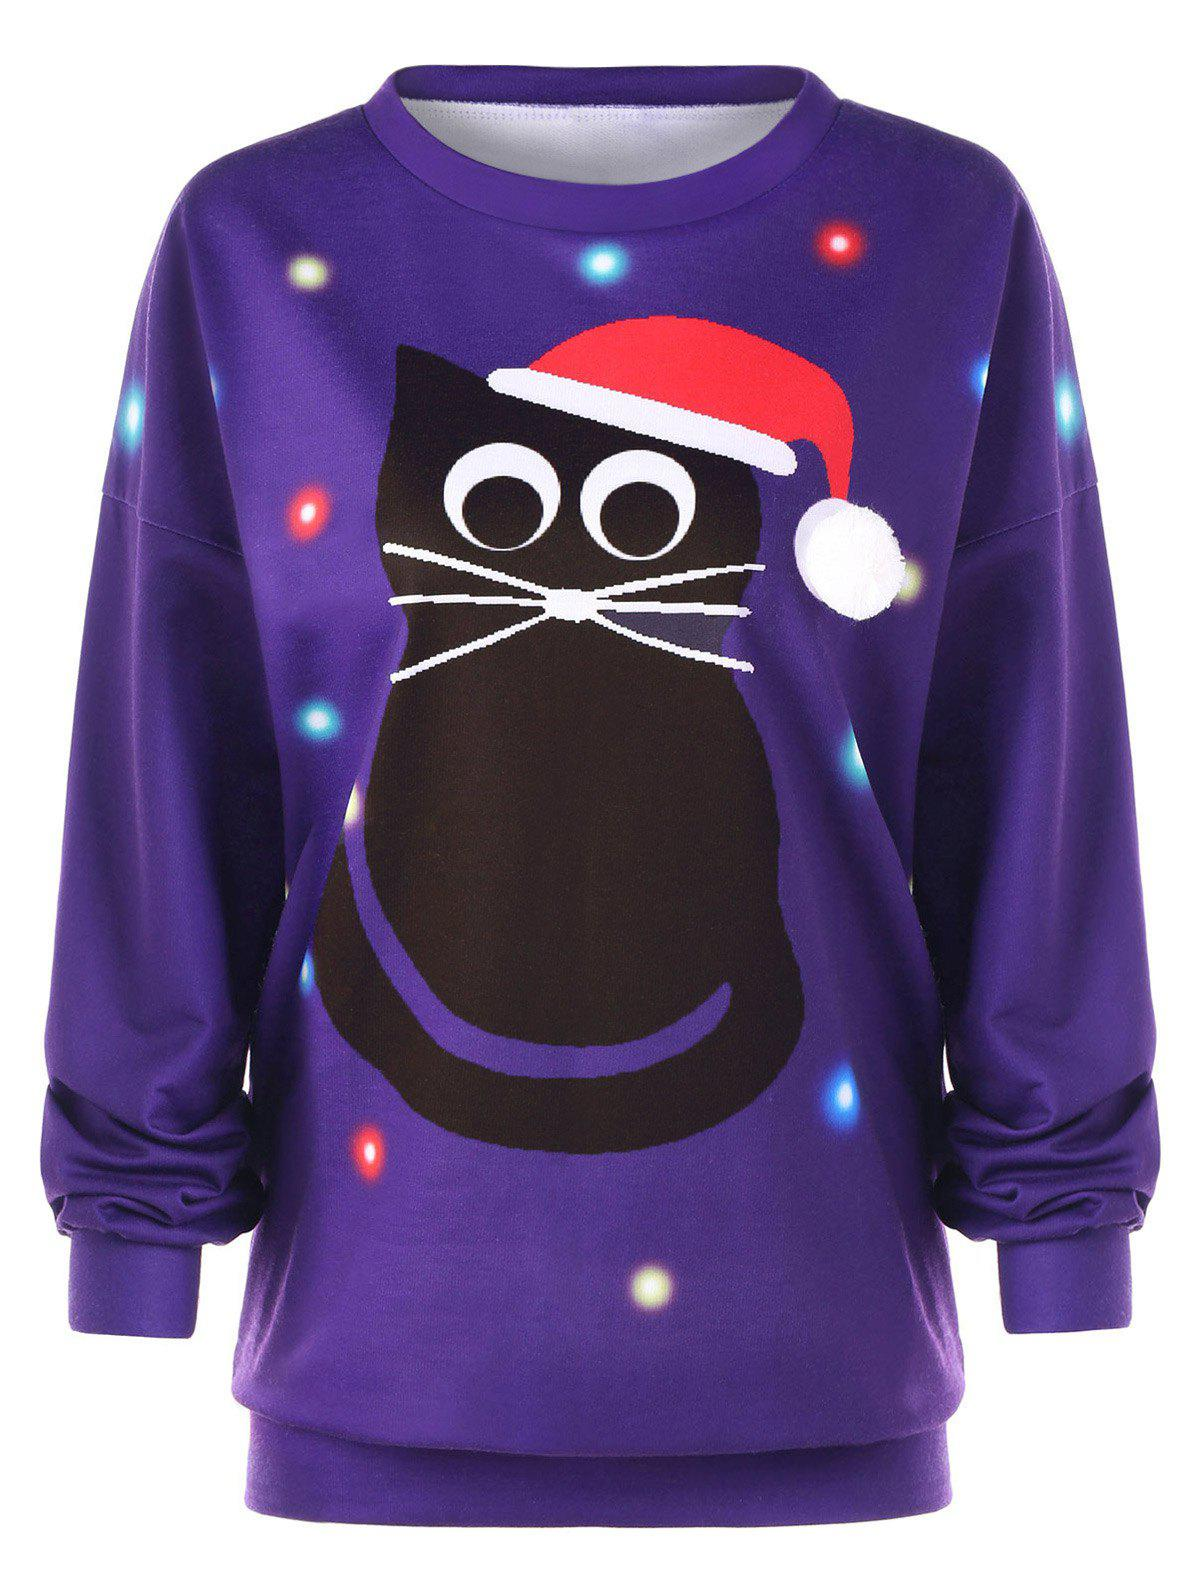 Plus Size Pullover Cat Print Drop Shoulder Christmas SweatshirtWOMEN<br><br>Size: 2XL; Color: PURPLE; Material: Polyester,Spandex; Shirt Length: Regular; Sleeve Length: Full; Style: Fashion; Pattern Style: Character; Season: Fall,Winter; Weight: 0.7000kg; Package Contents: 1 x Sweatshirt;